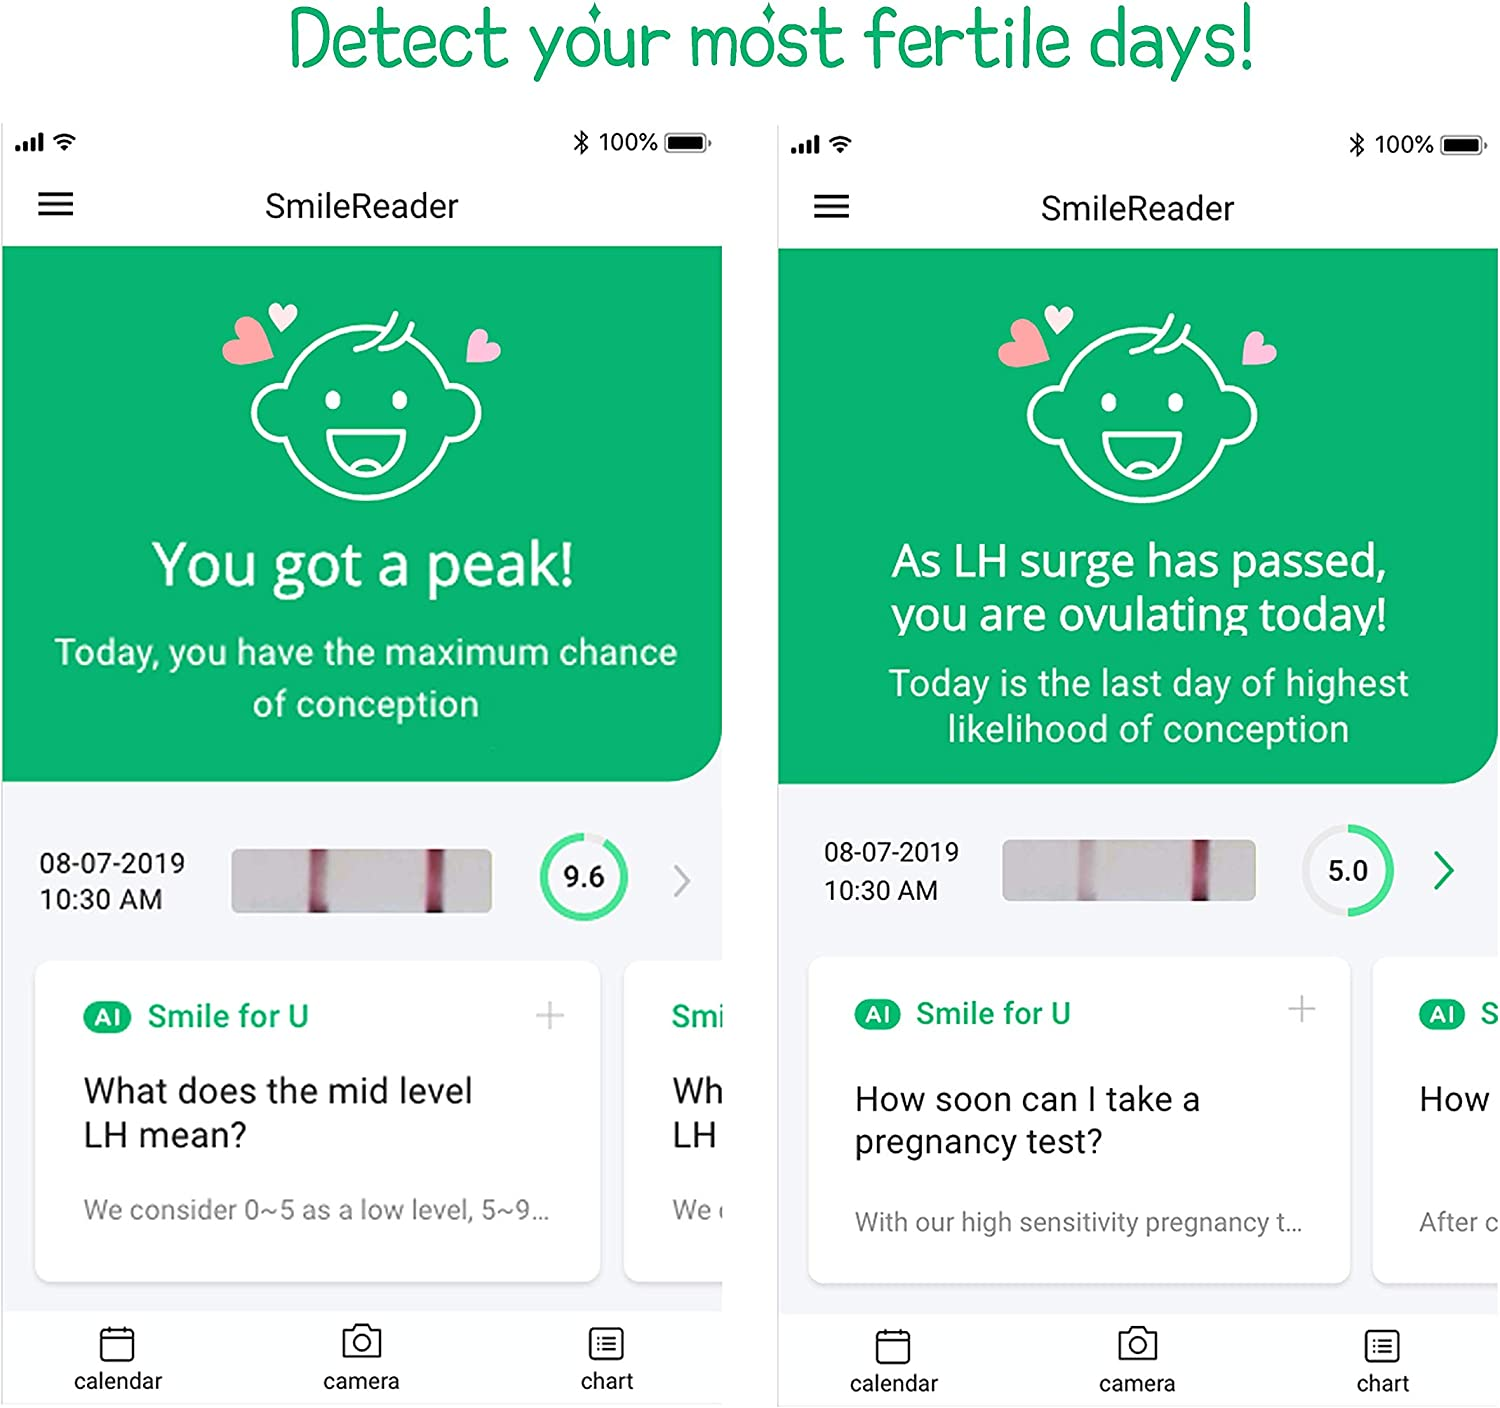 SmileReader 30 Ovulation Test Strips & 10 Pregnancy Test Strips | Track Your Fertility and Ovulation Schedule | Bonus Free App for iOS and Android (30LH + 10HCG)